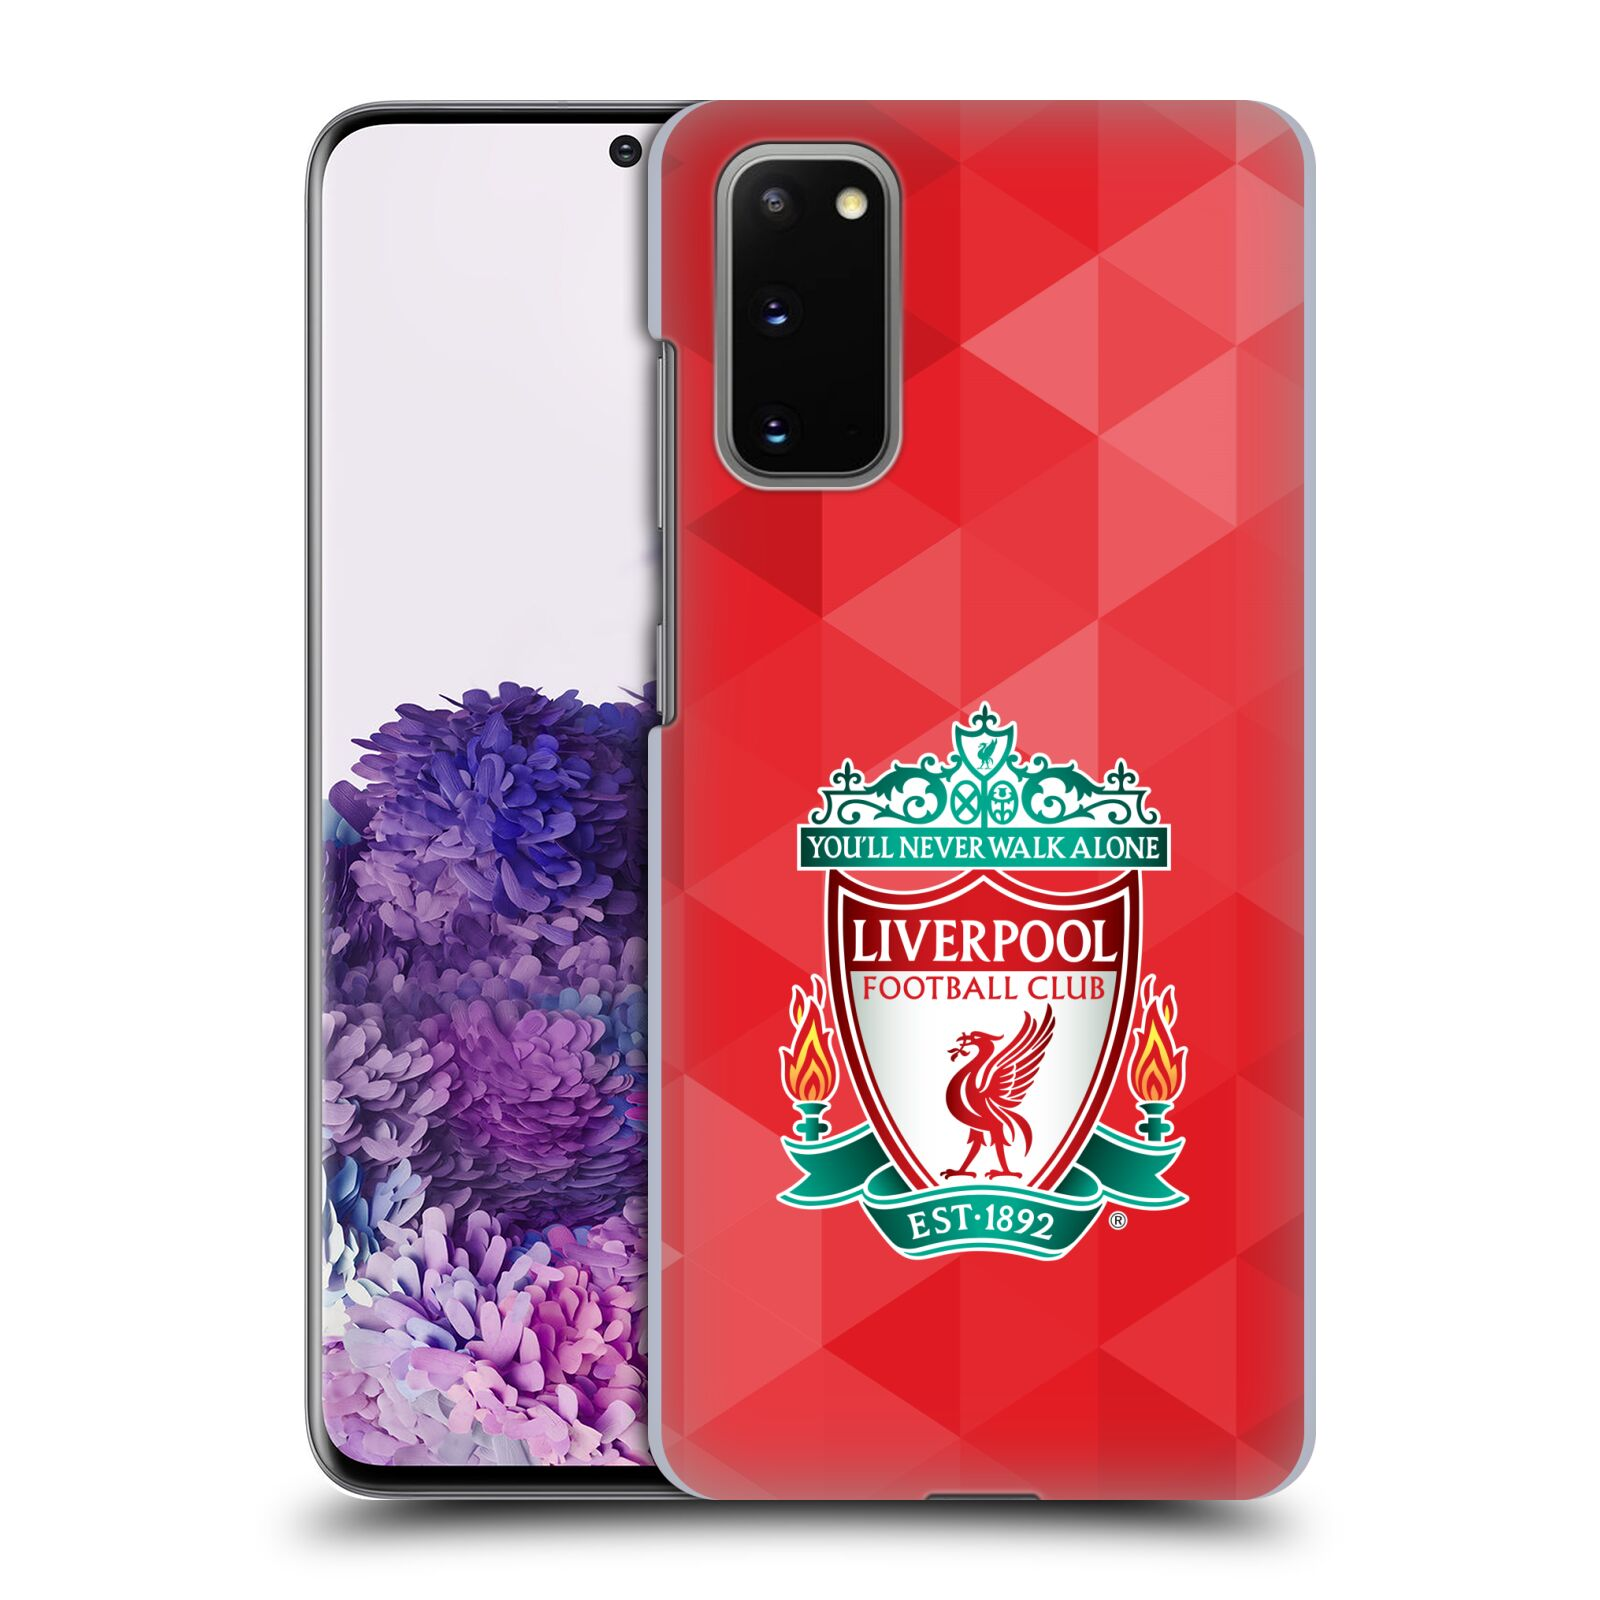 Plastové pouzdro na mobil Samsung Galaxy S20 - Head Case - ZNAK LIVERPOOL FC OFFICIAL GEOMETRIC RED